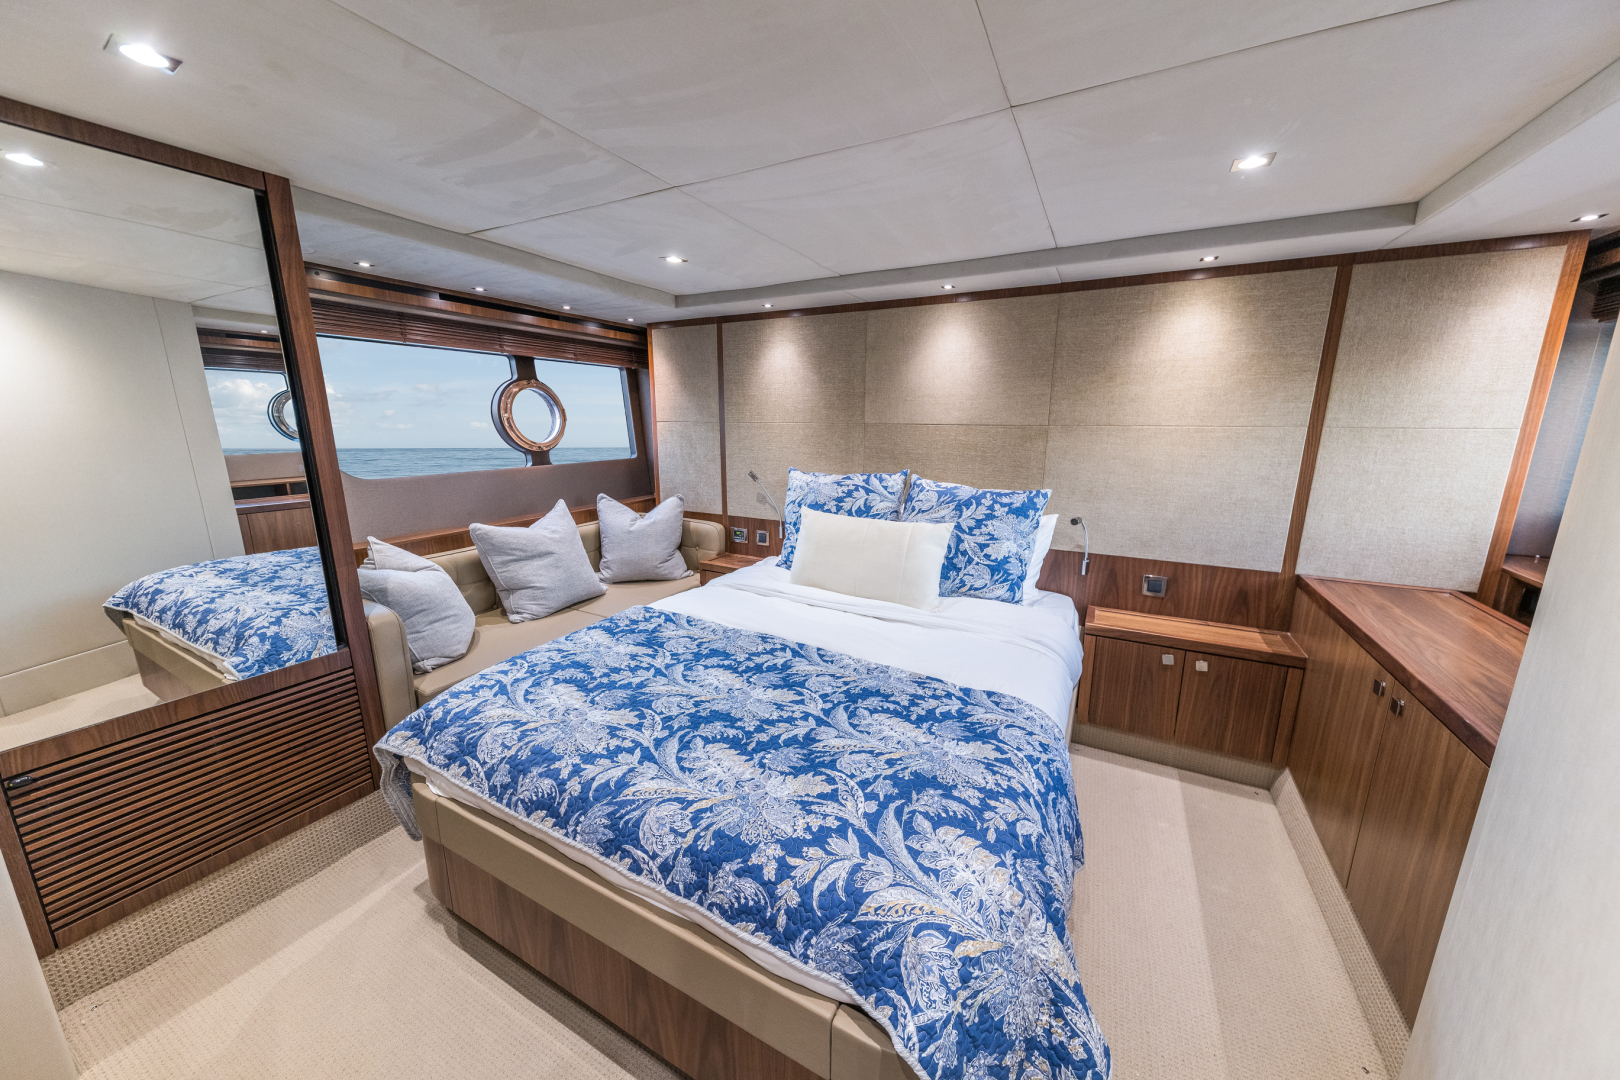 Sunseeker-Predator 2016-Wired Up Fort Lauderdale-Florida-United States-Master Stateroom-1585672 | Thumbnail